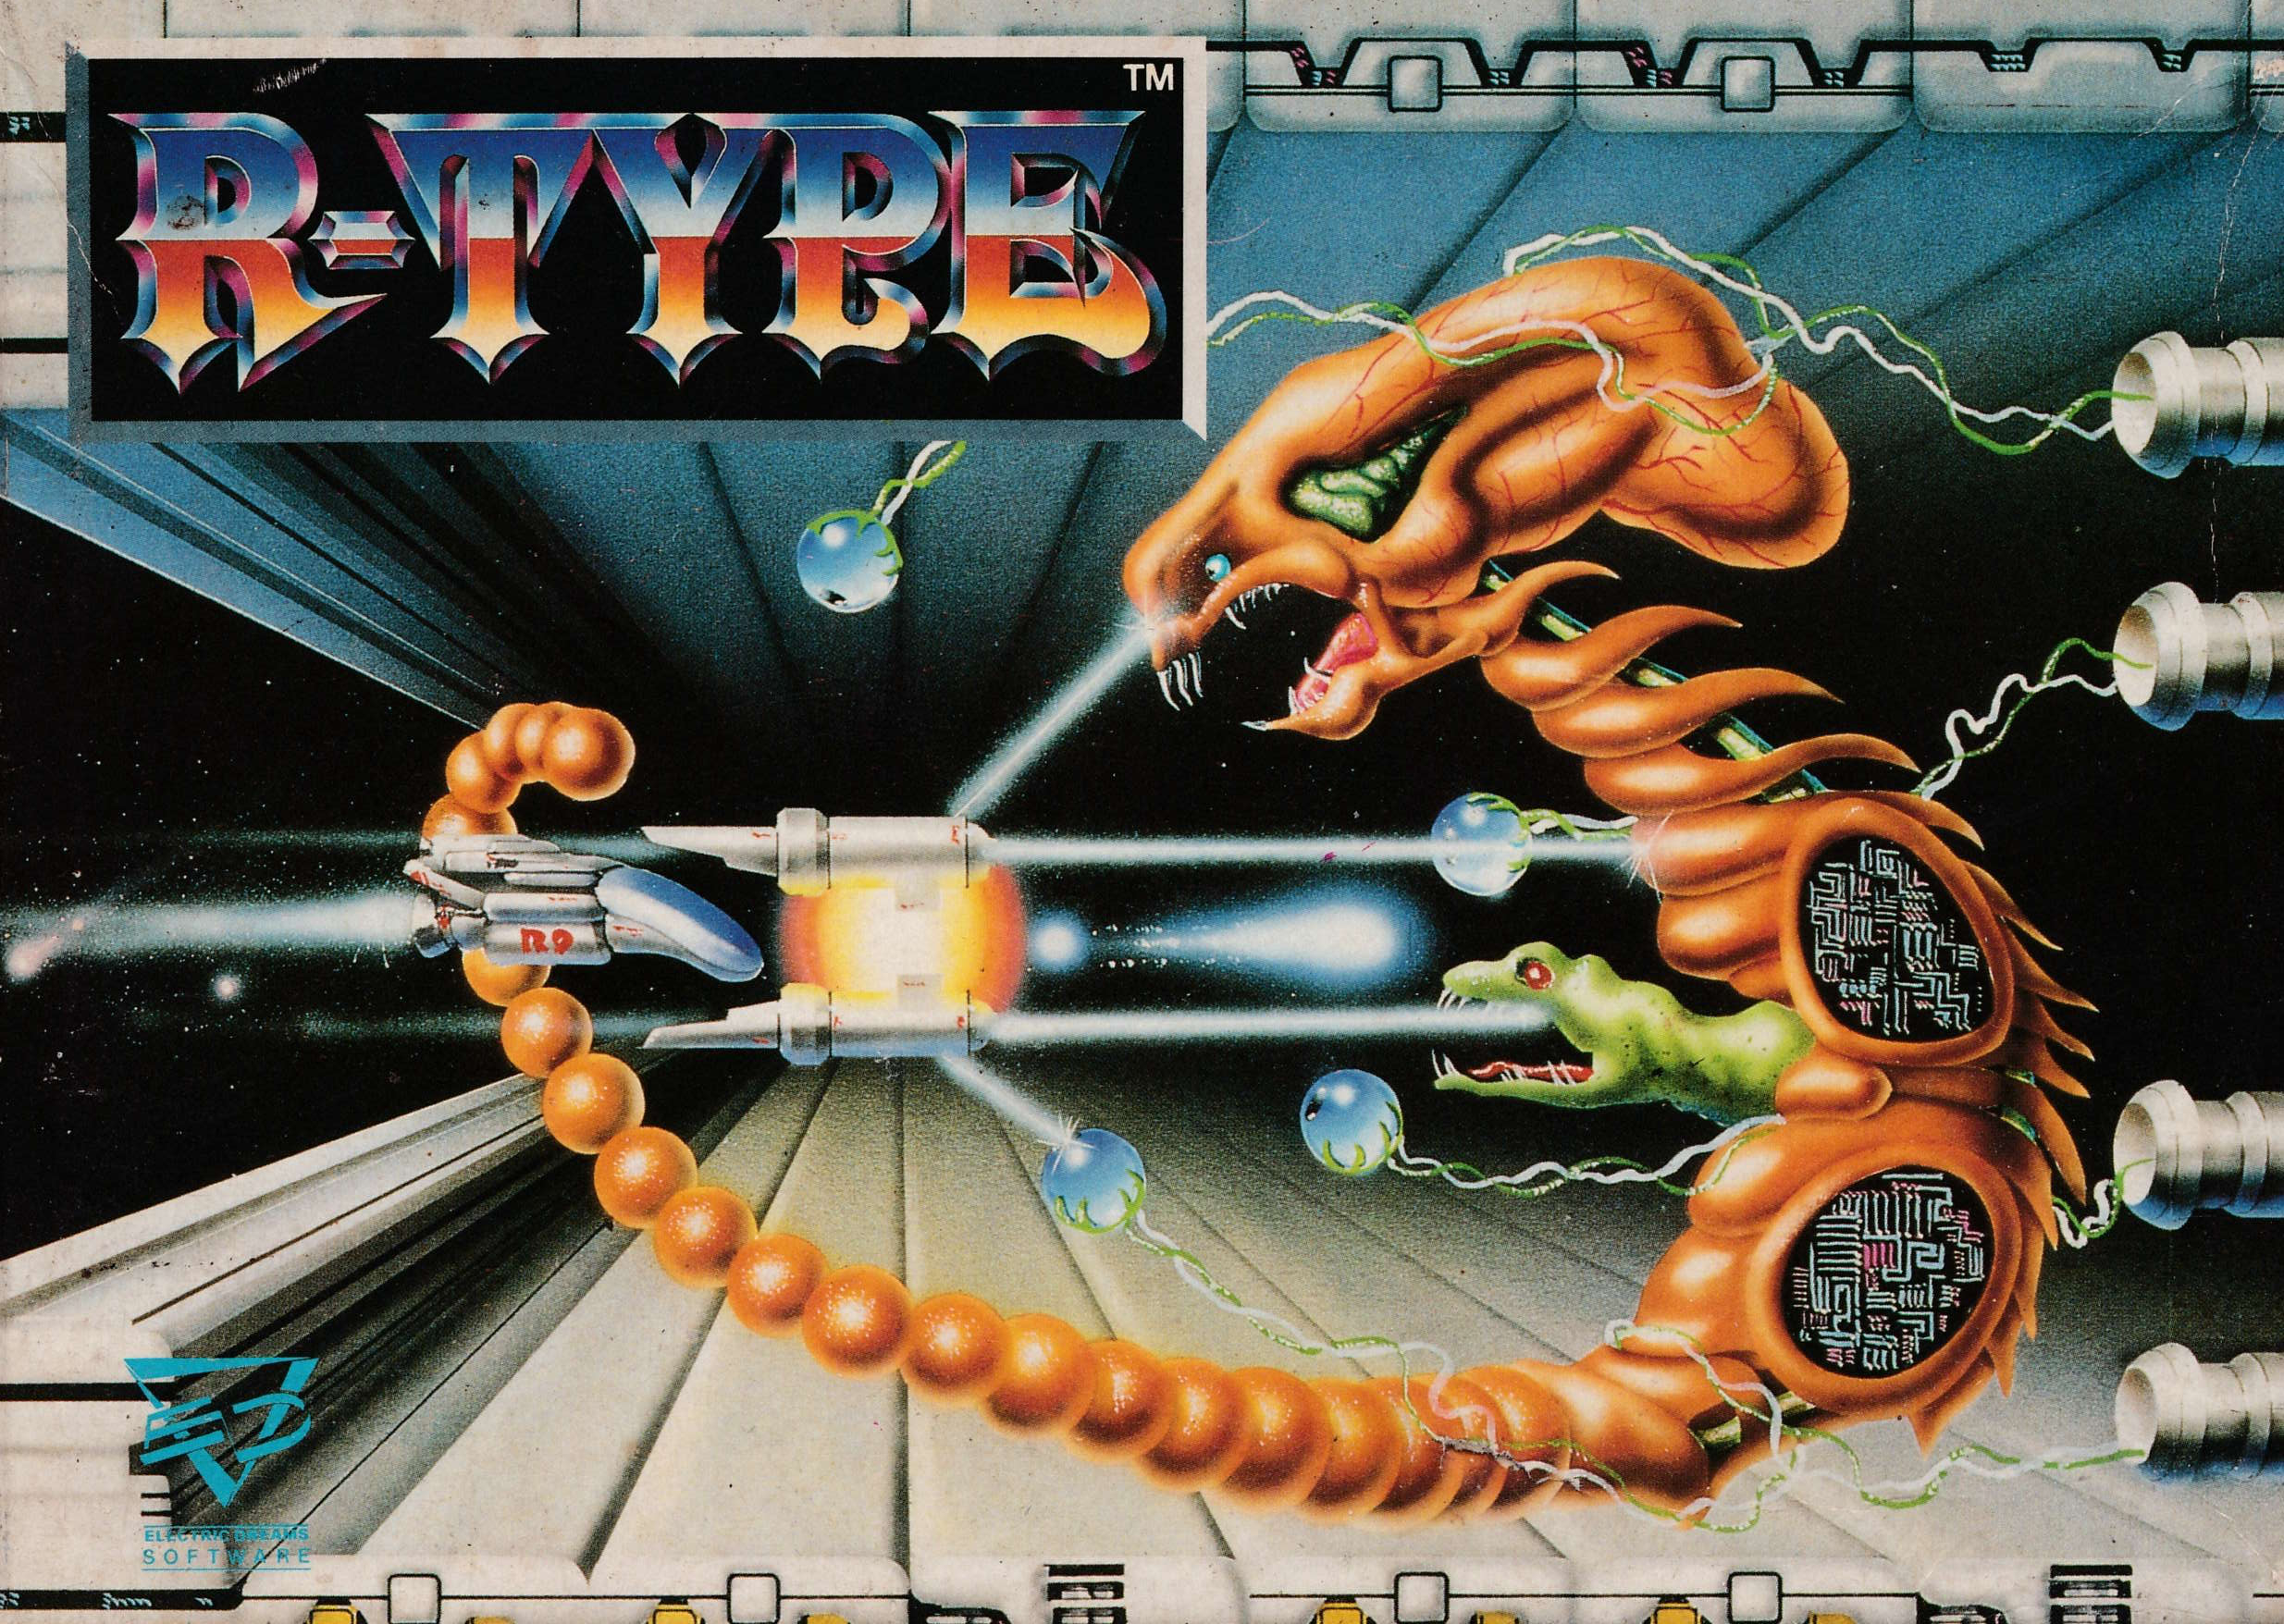 cover of the Amstrad CPC game R-Type  by GameBase CPC